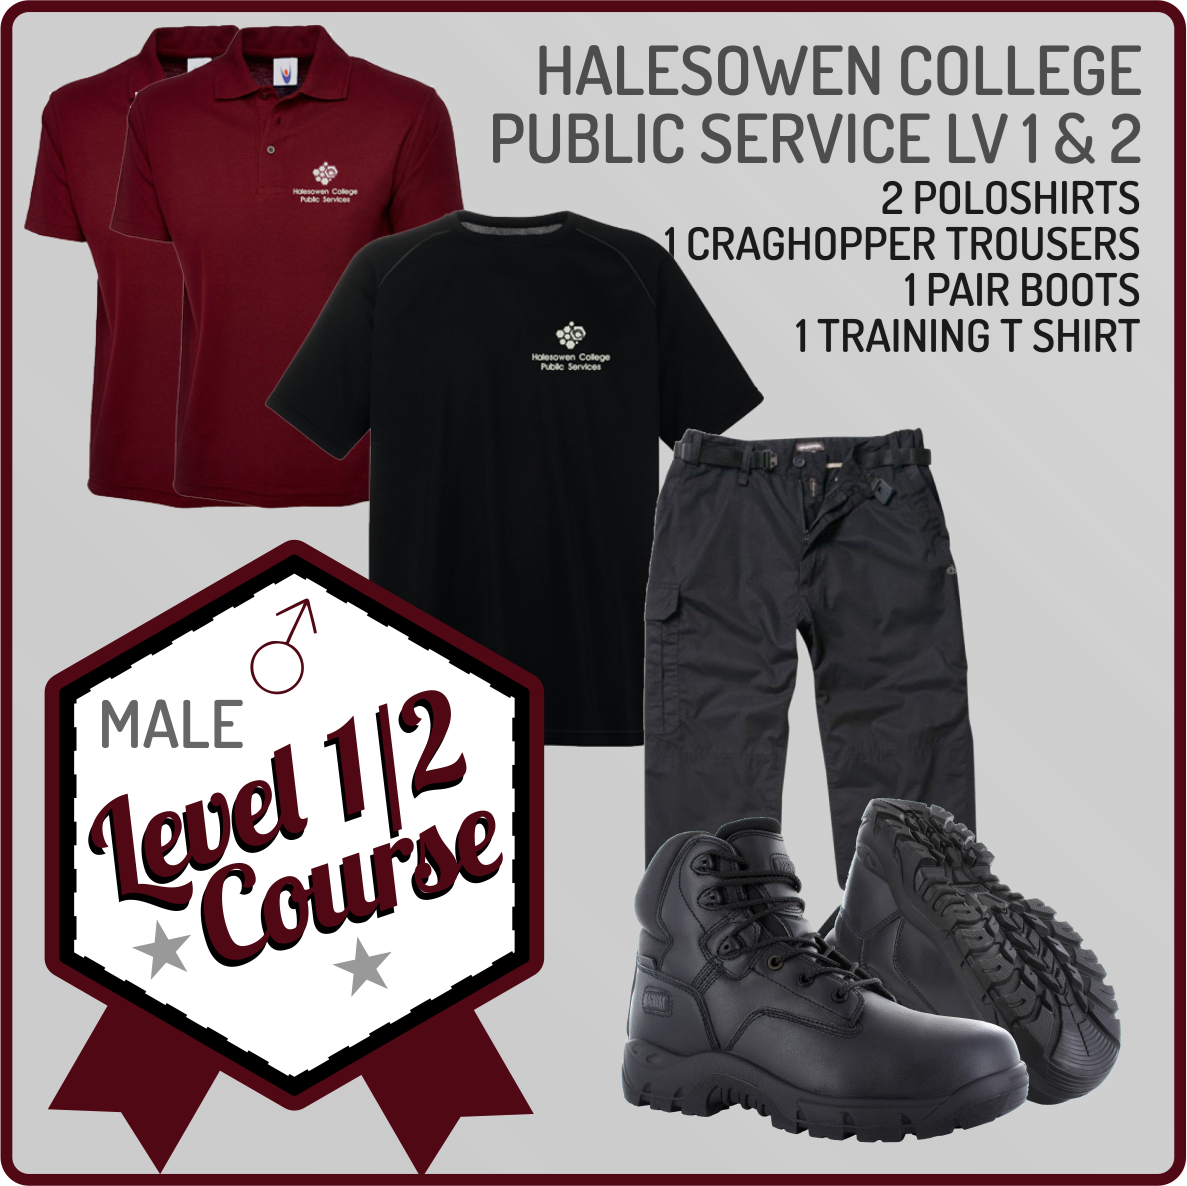 Complusary Male Uniform Set for Public Services Course Students - 1 Performance Jacket, 1 Craghoppers trousers, 2 Poloshirts, 1 Performance T Shirt and 1 pair of shoes.